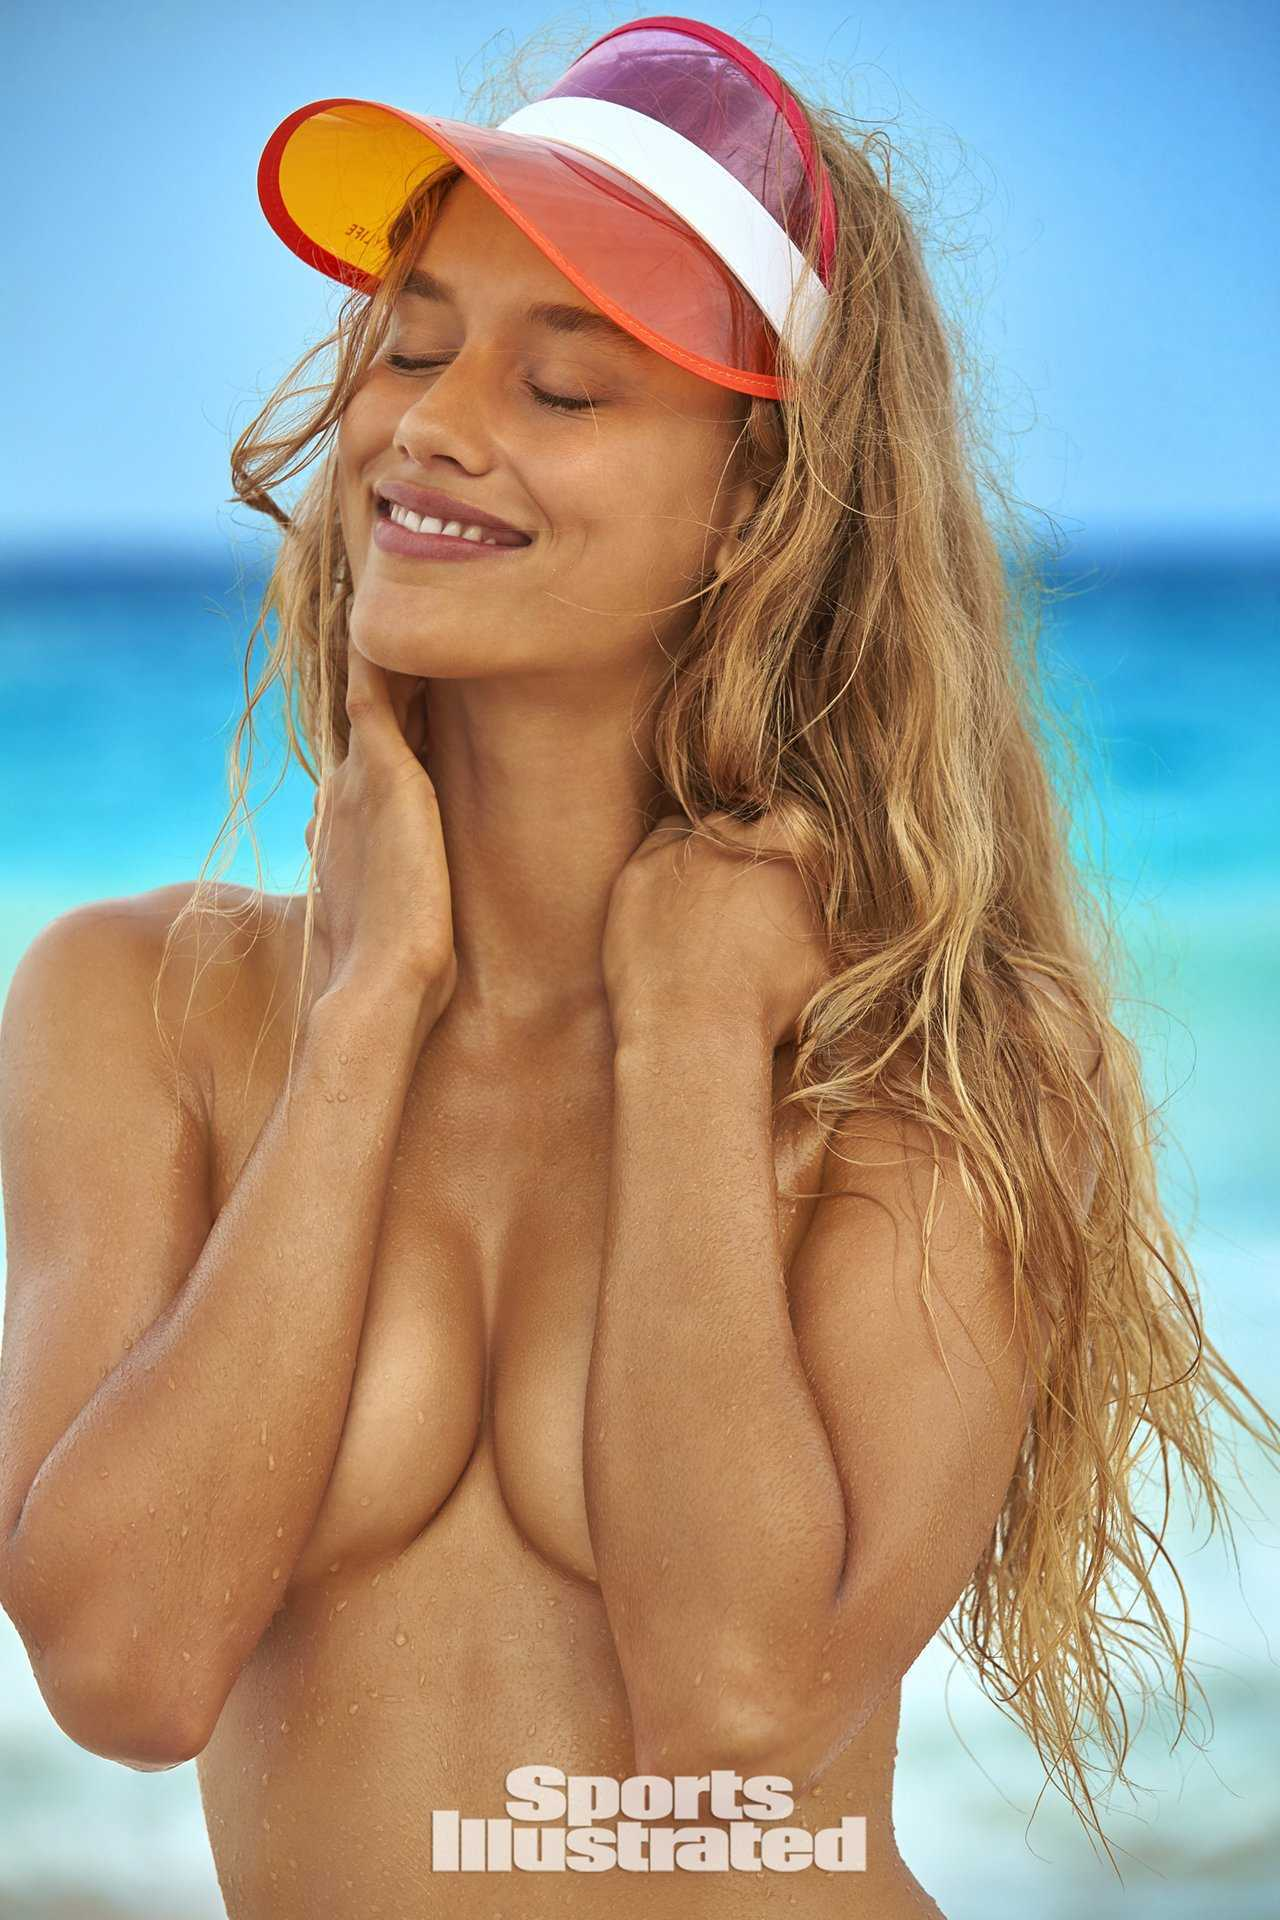 Chase Carter in Sports Illustrated Swimsuit Issue 2018